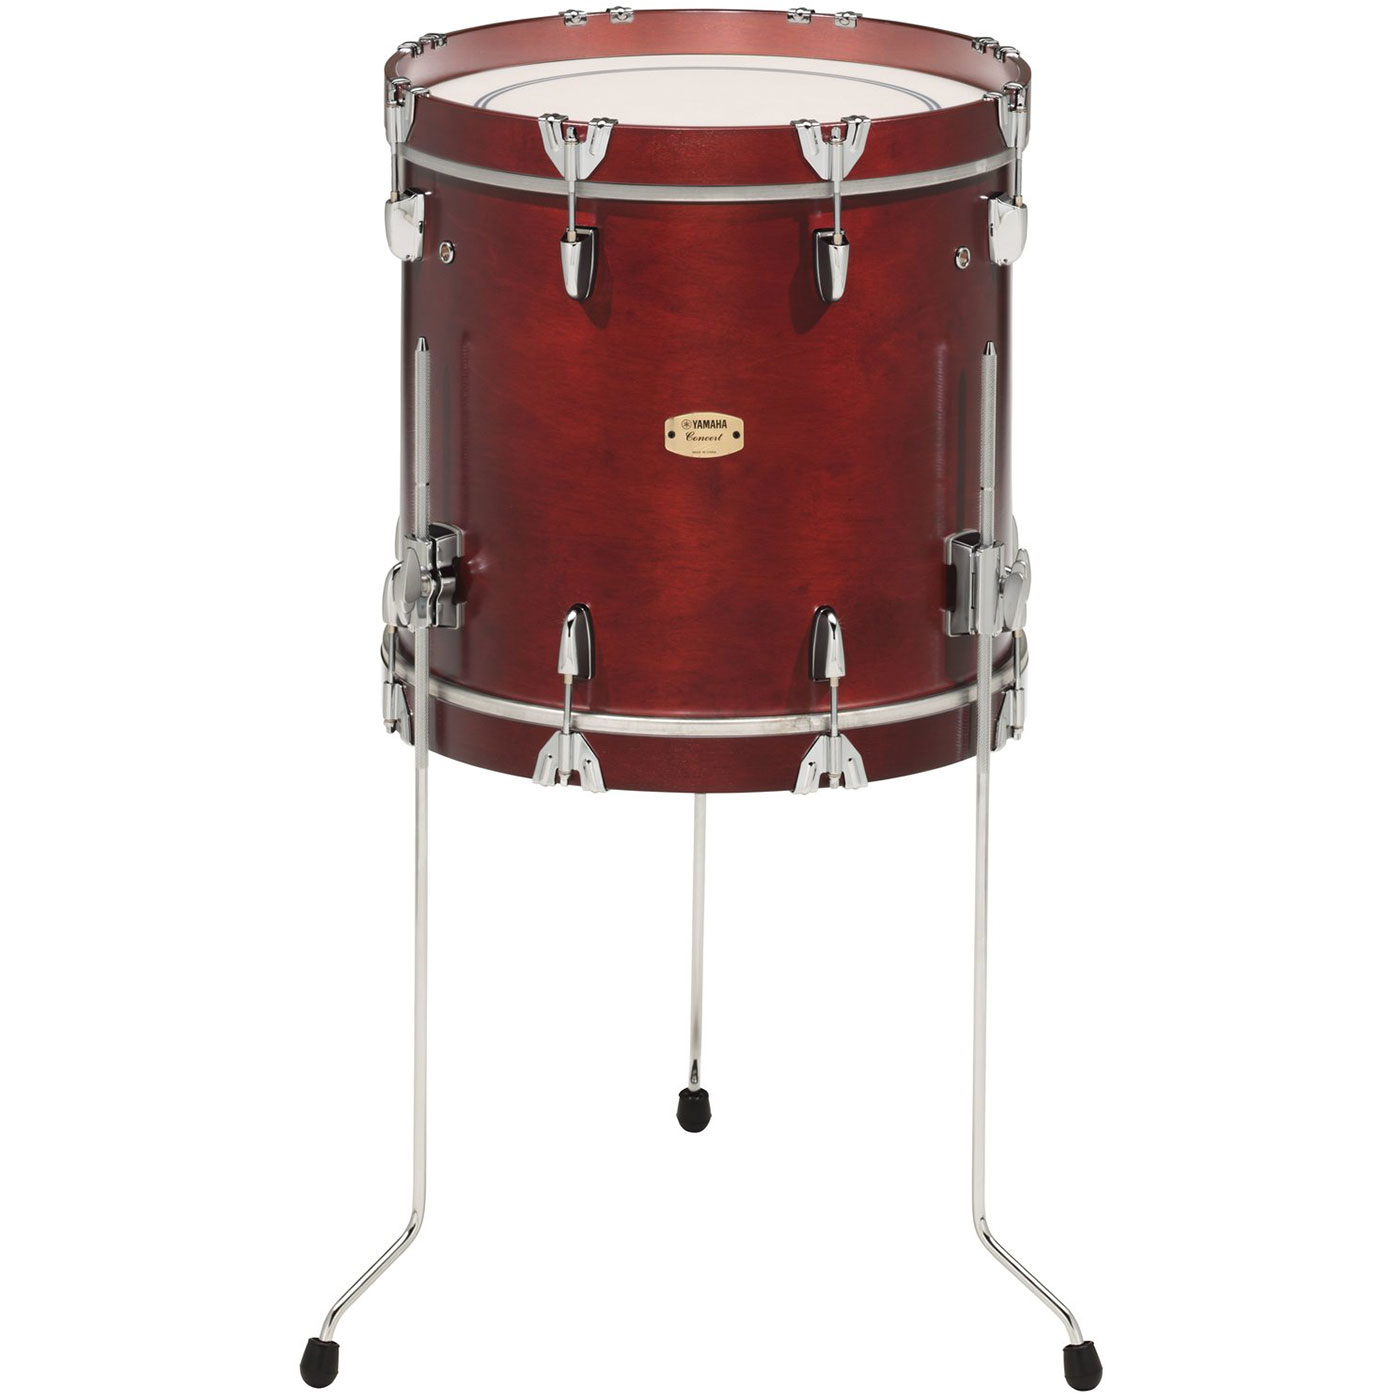 "Yamaha 20"" x 16"" 9000 Series Impact Drum in Darkwood Stain"